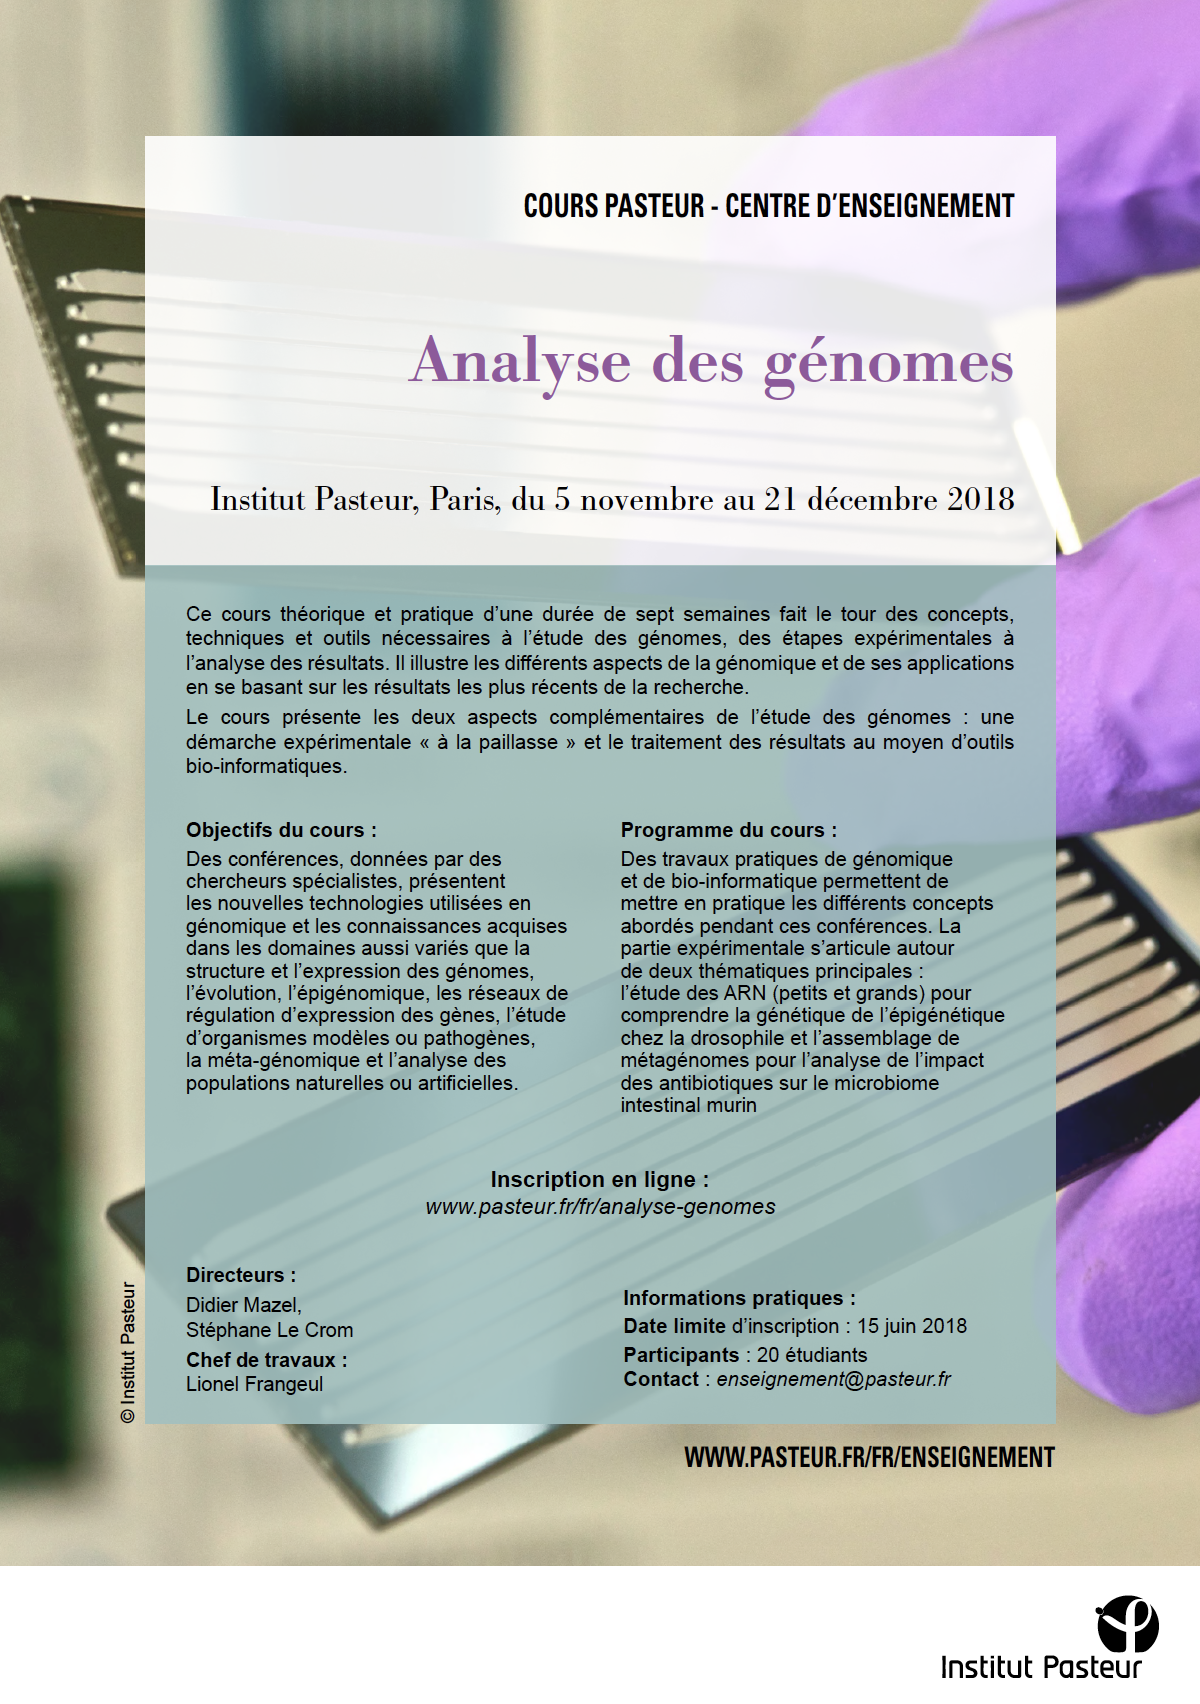 Genome analysis Flyer - Course 2018